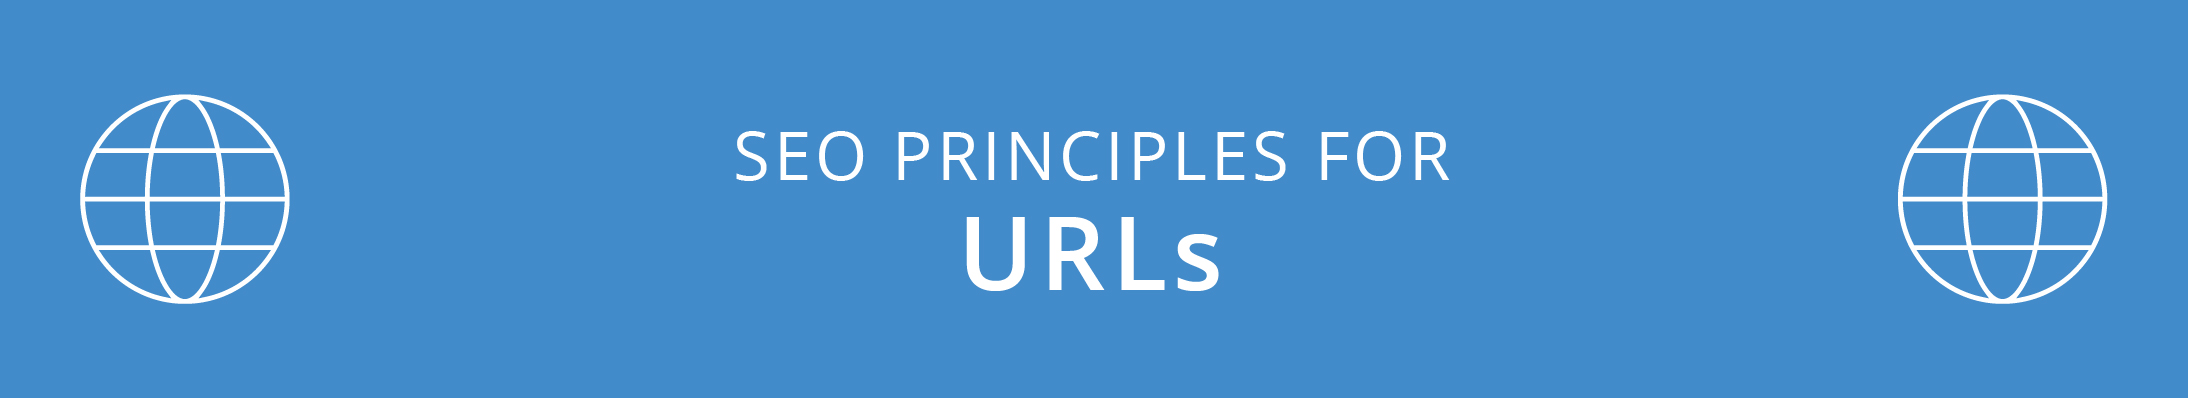 URL Principles and Best Practices for SEO